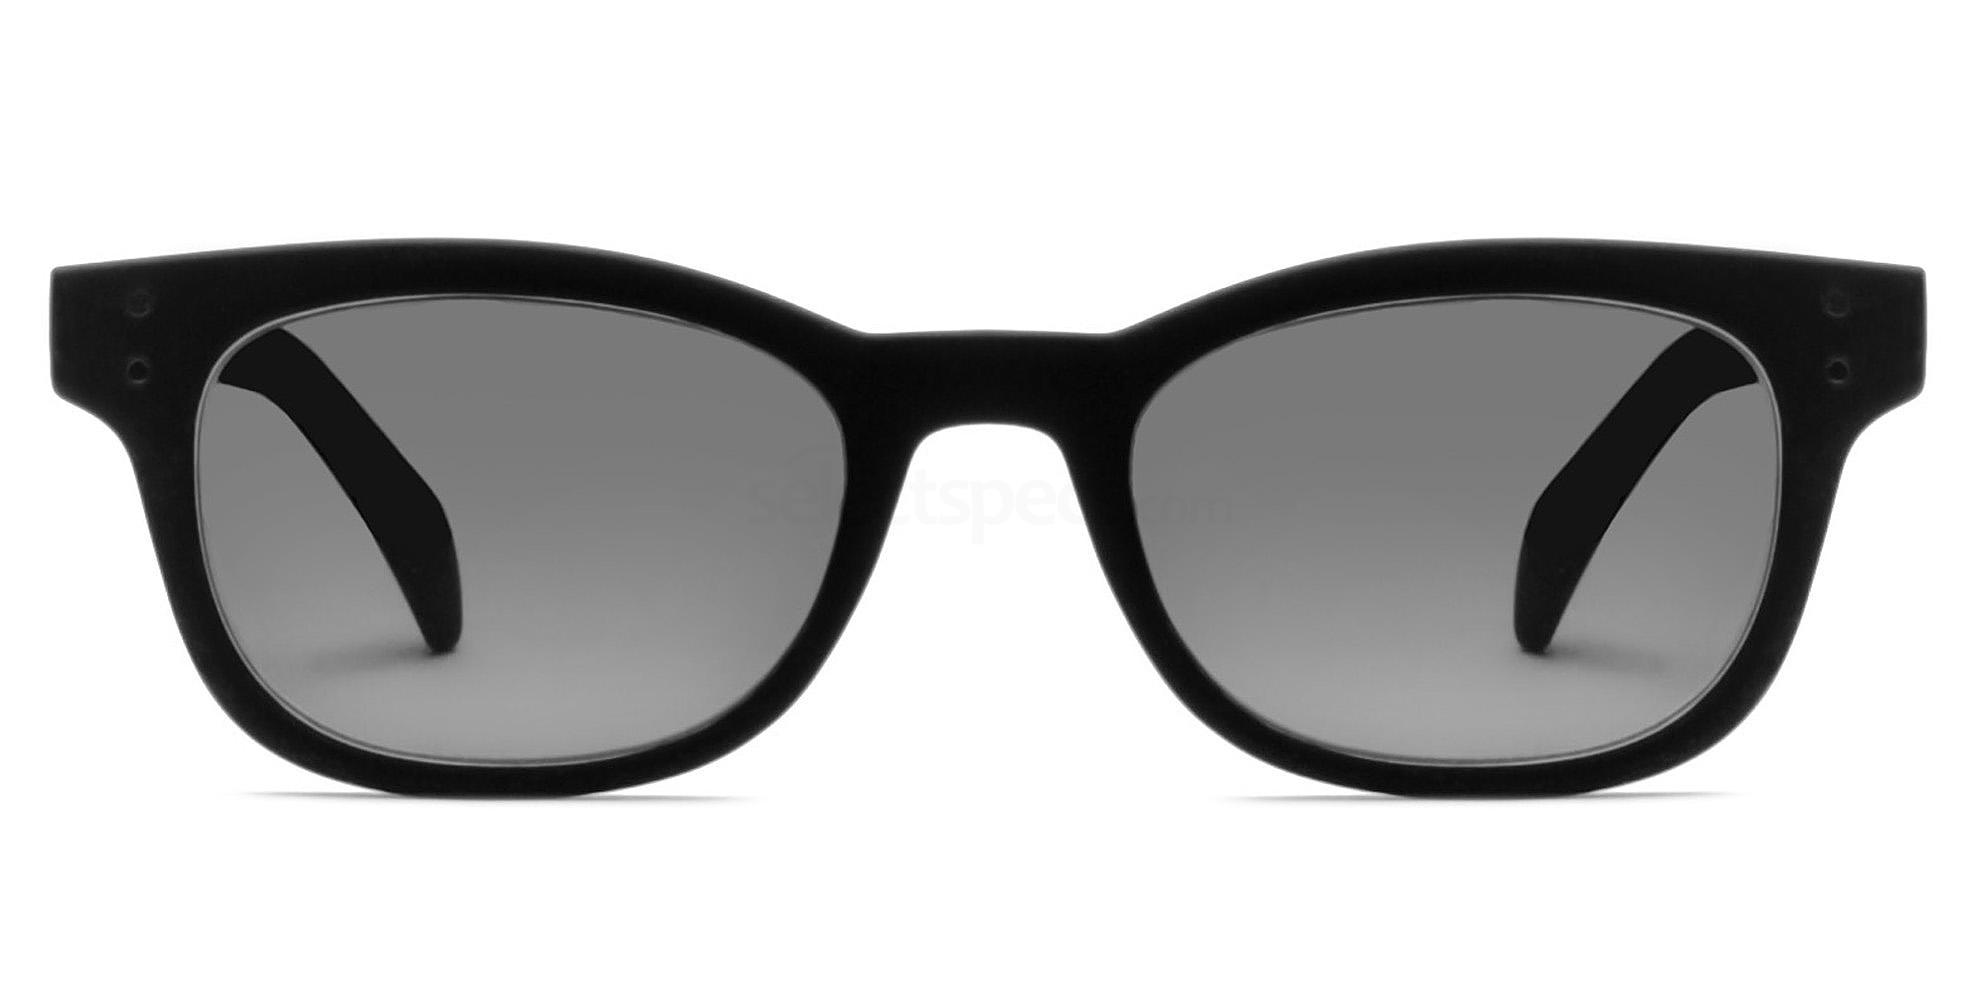 C02 Polarized Grey 2249 - Matte Black (Polarized) Sunglasses, Savannah